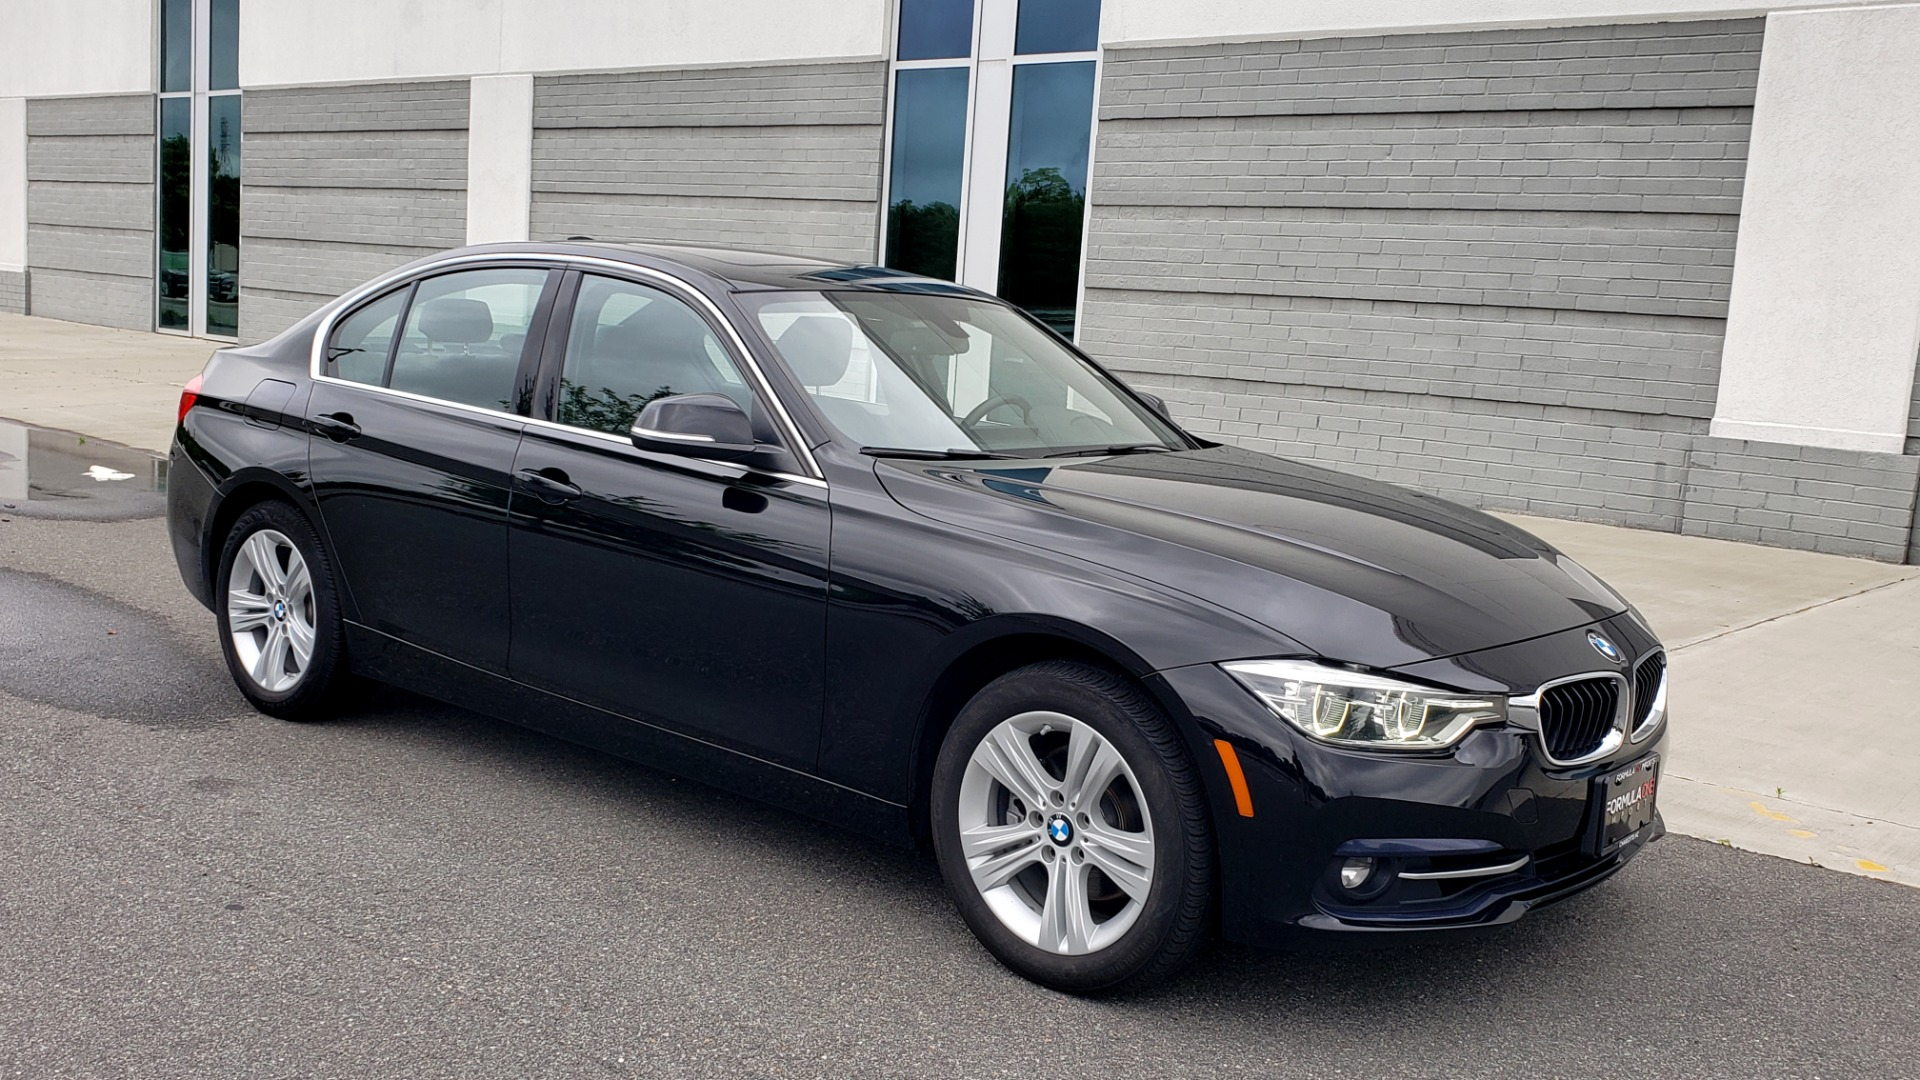 Used 2018 BMW 3 SERIES 330IXDRIVE / CONV PKG / NAV / SUNROOF / HTD STS / REARVIEW for sale $26,552 at Formula Imports in Charlotte NC 28227 7